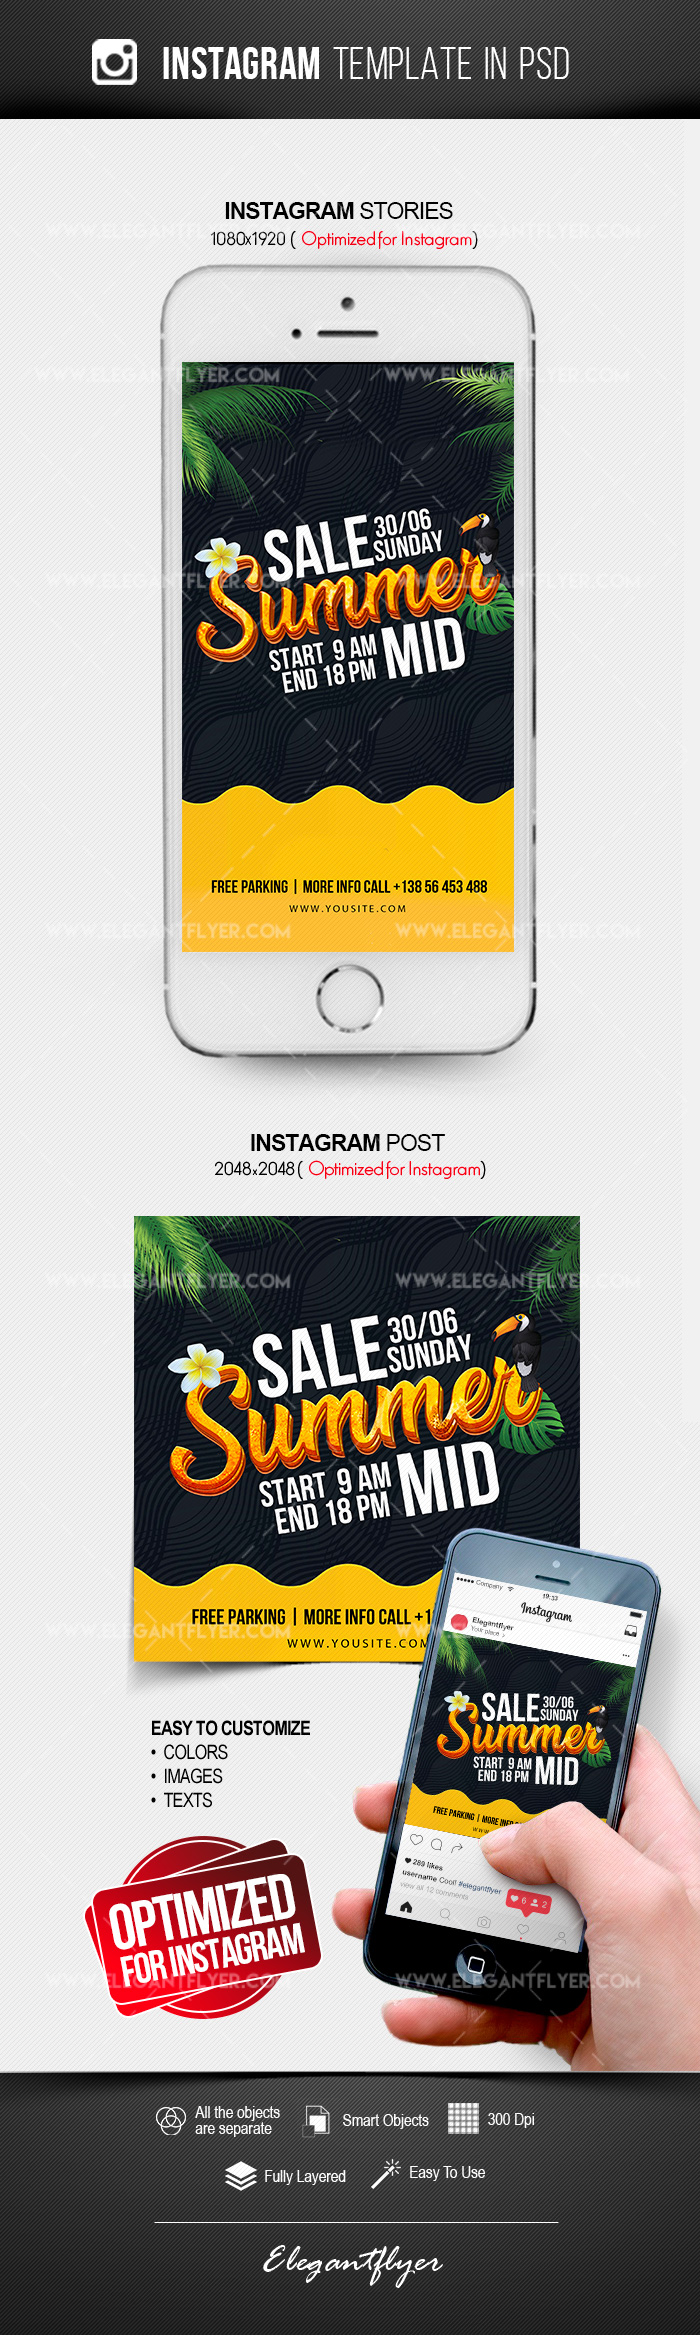 Summer Mid Sale – Free Instagram Stories Template in PSD + Post Templates